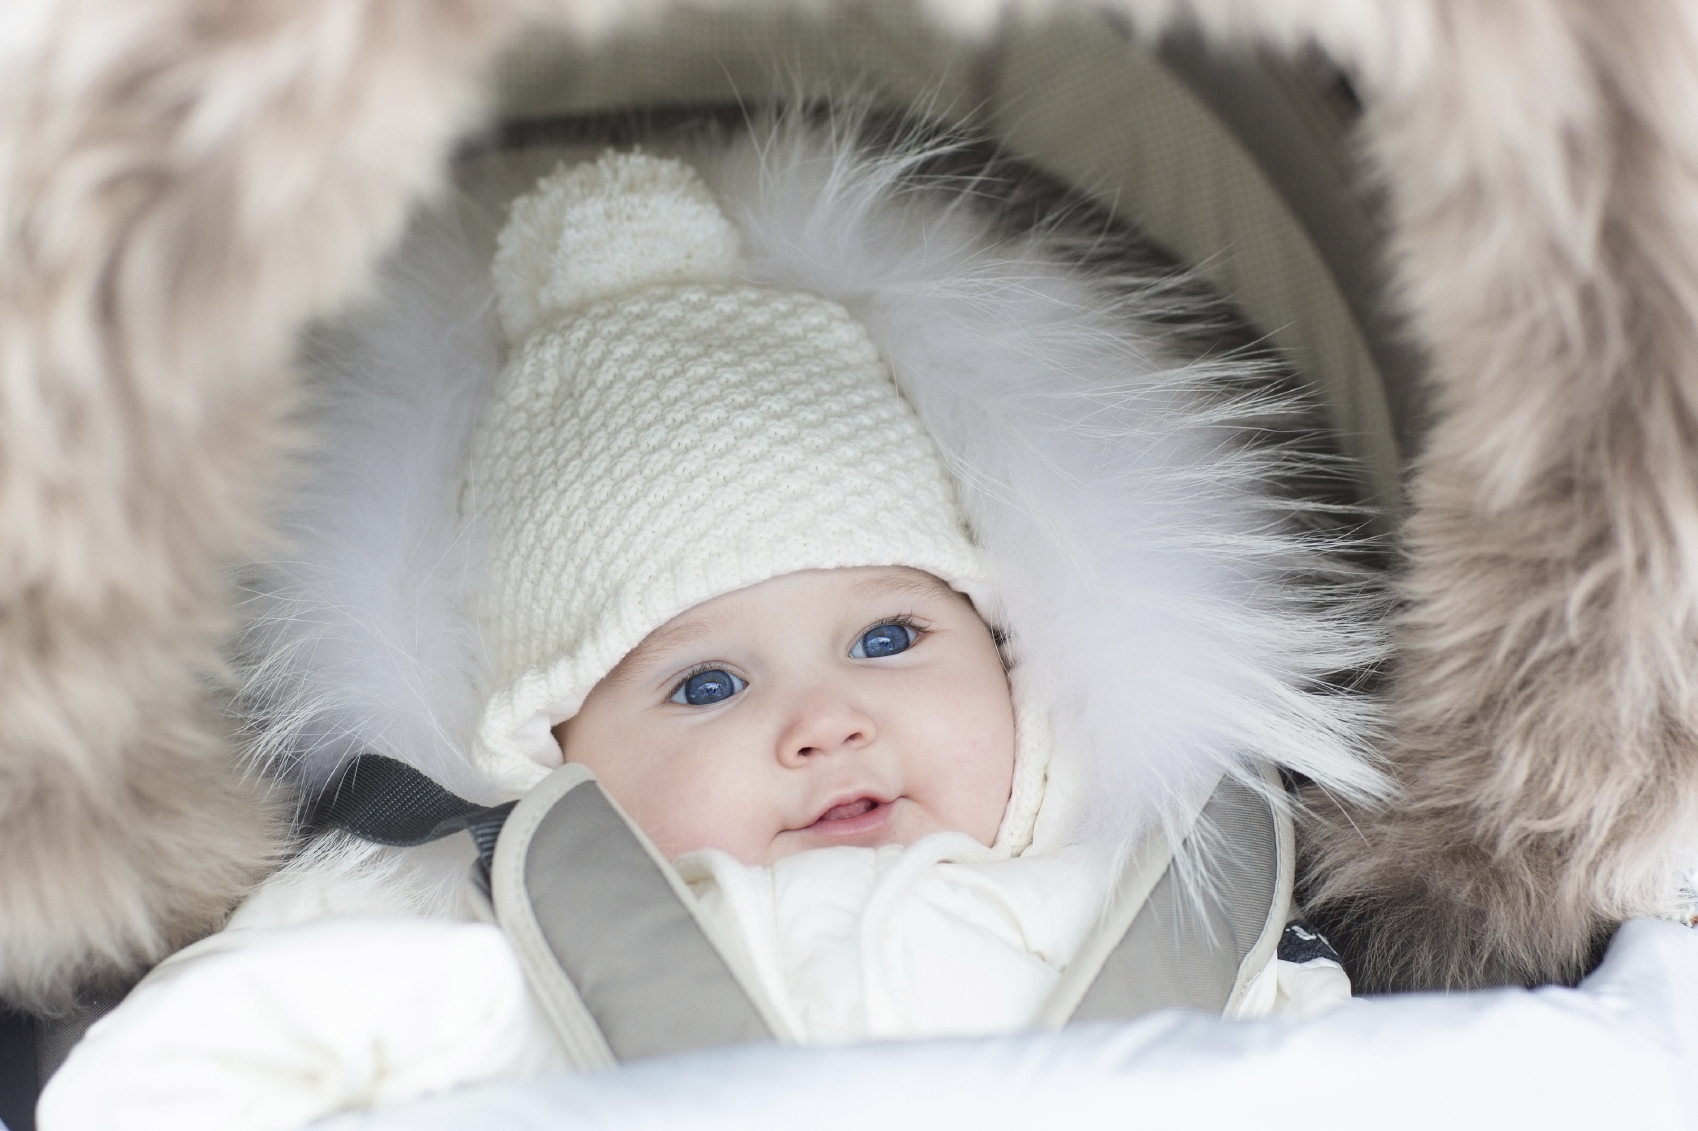 Adorable smiling little baby sitting in a warm stroller on a wal